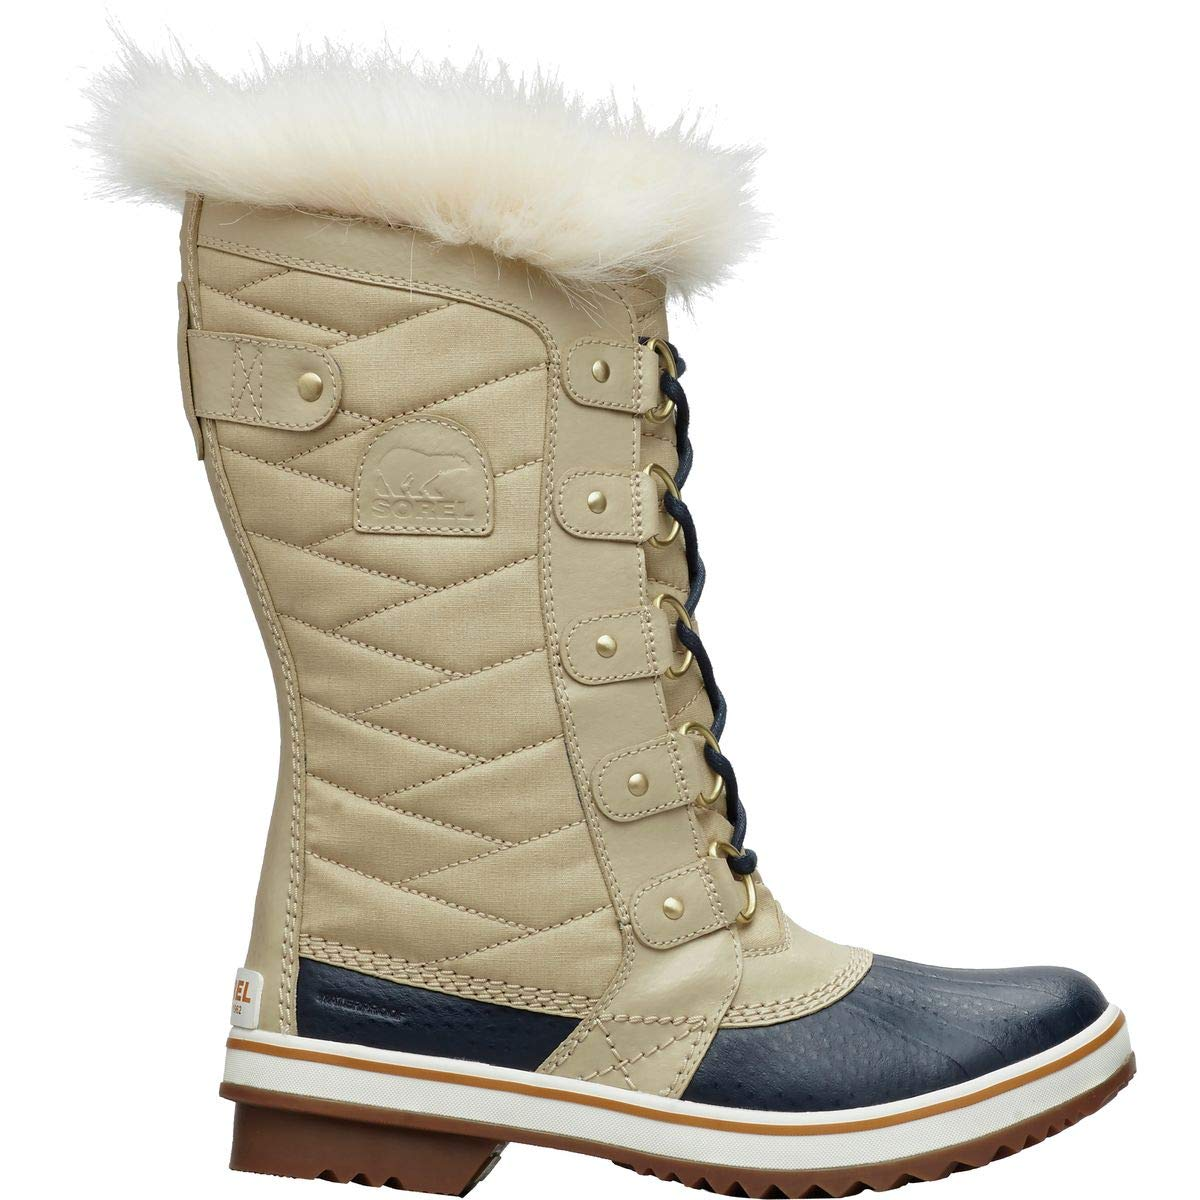 Sorel Women's Tofino II Oatmeal 8 B US by Sorel